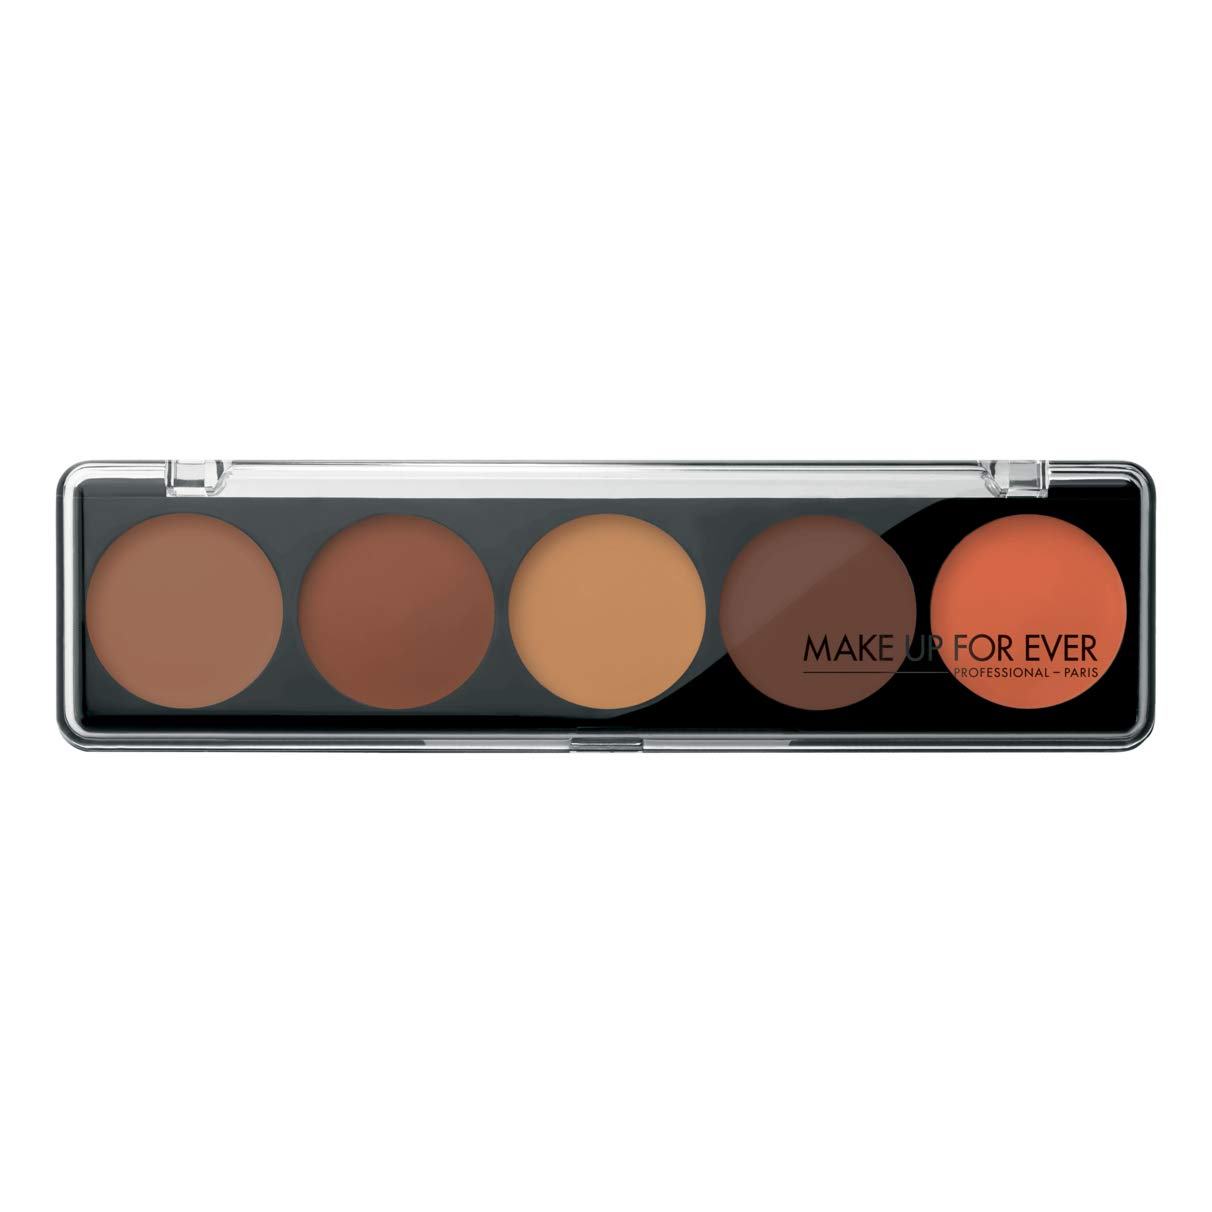 Make Up For Ever 5 Camouflage Cream Palette No 4